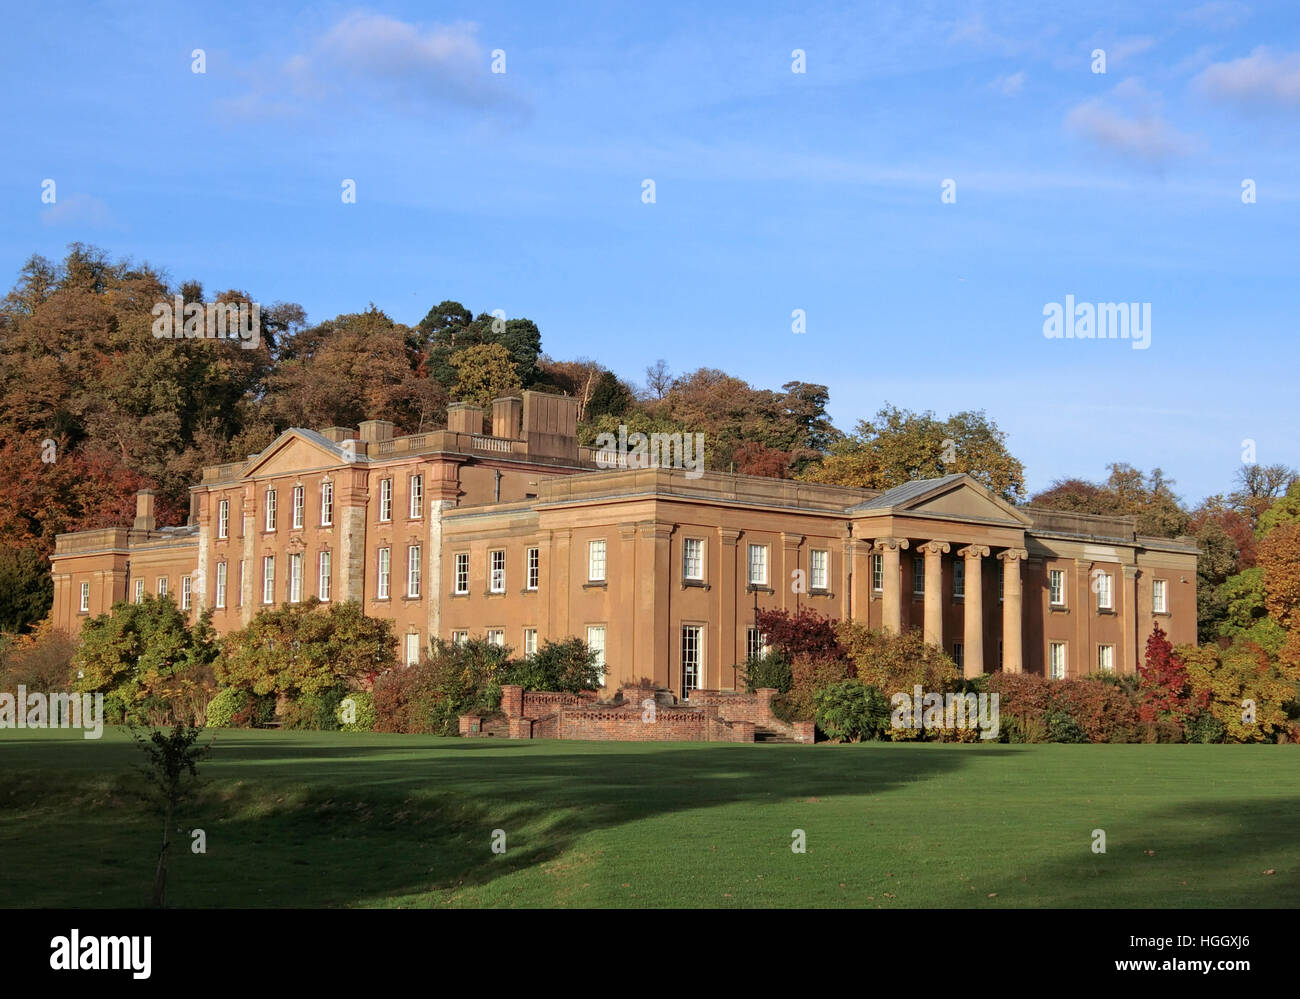 Himley Hall Country House, Himley, Staffordshire, England, UK - Stock Image